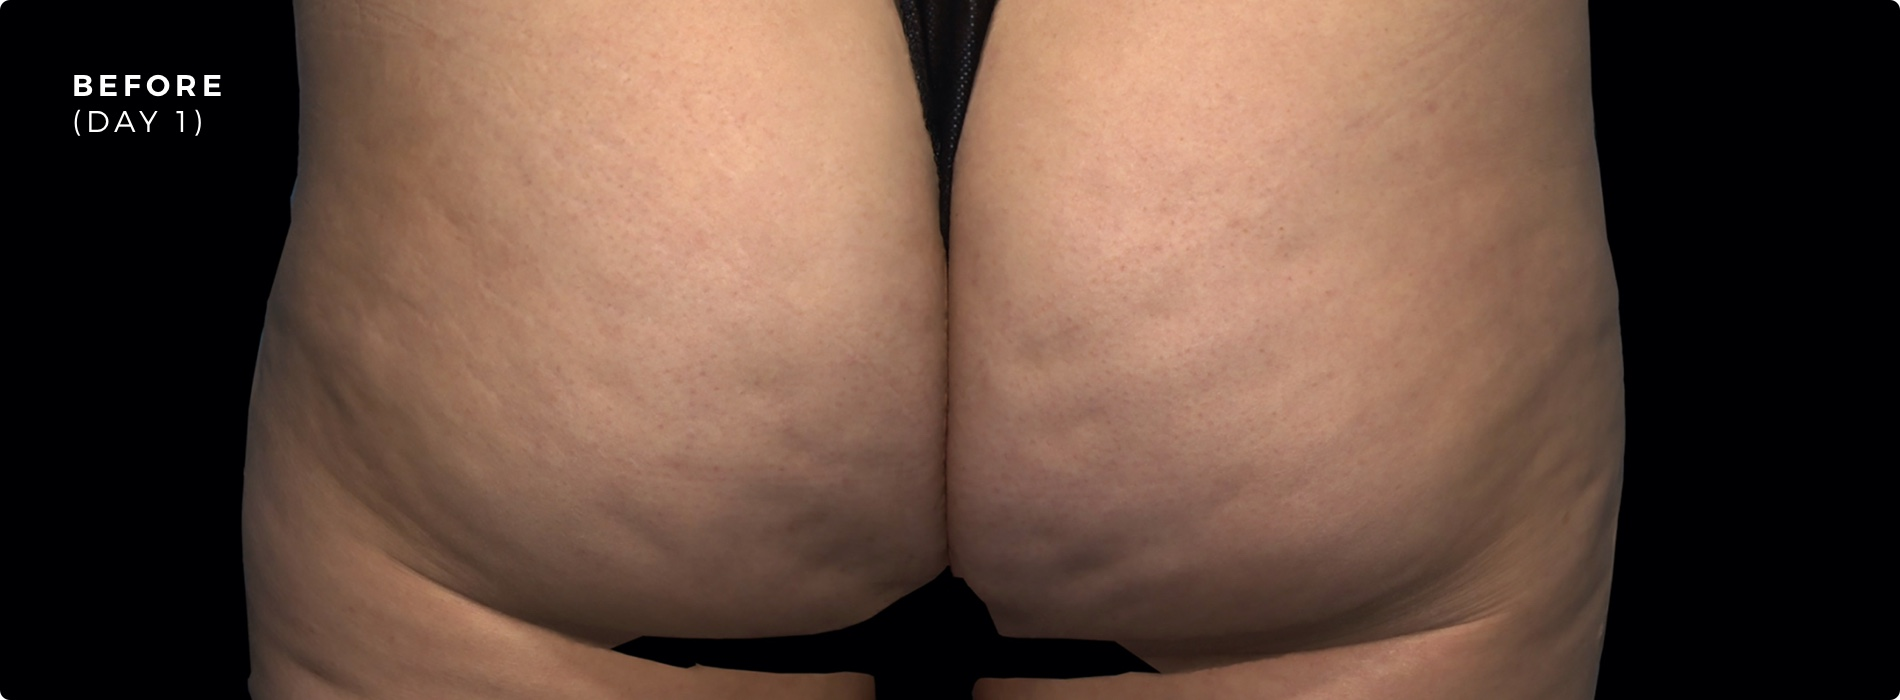 QWO Cellulite Reduction After 3